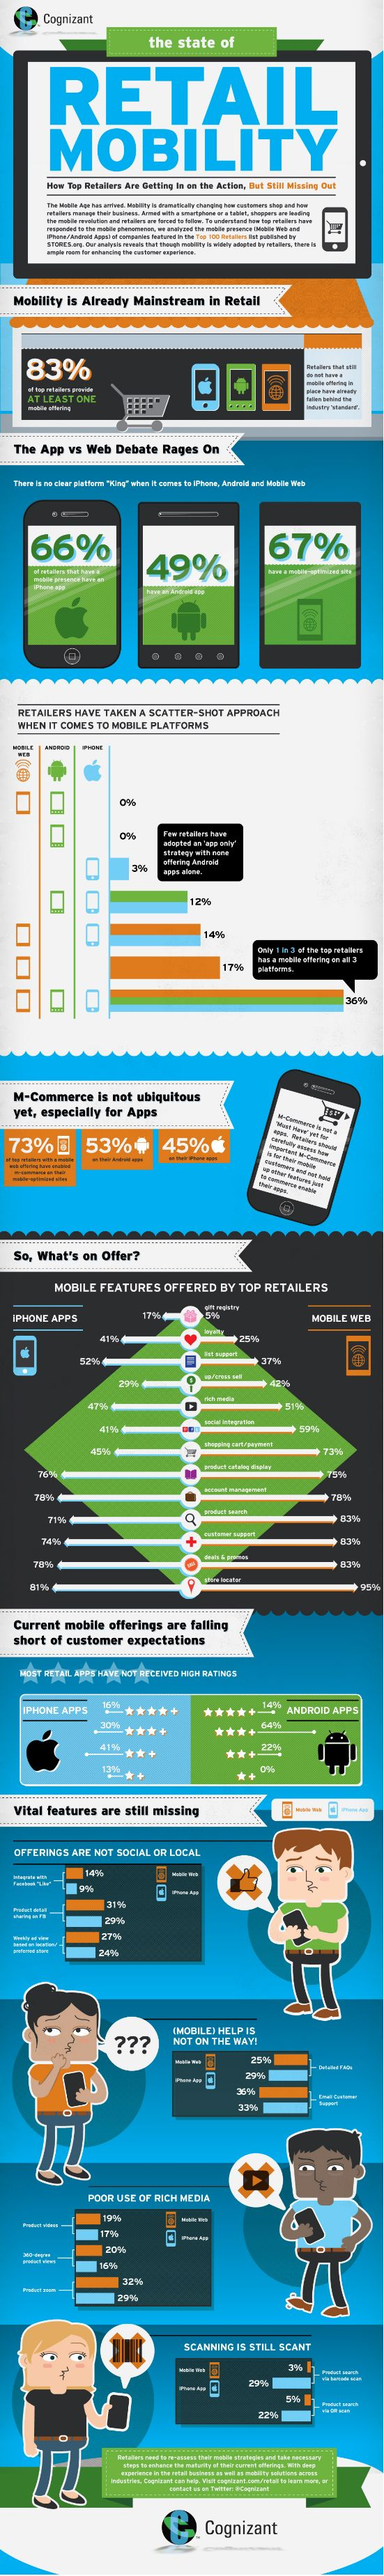 The state of Retail Mobility